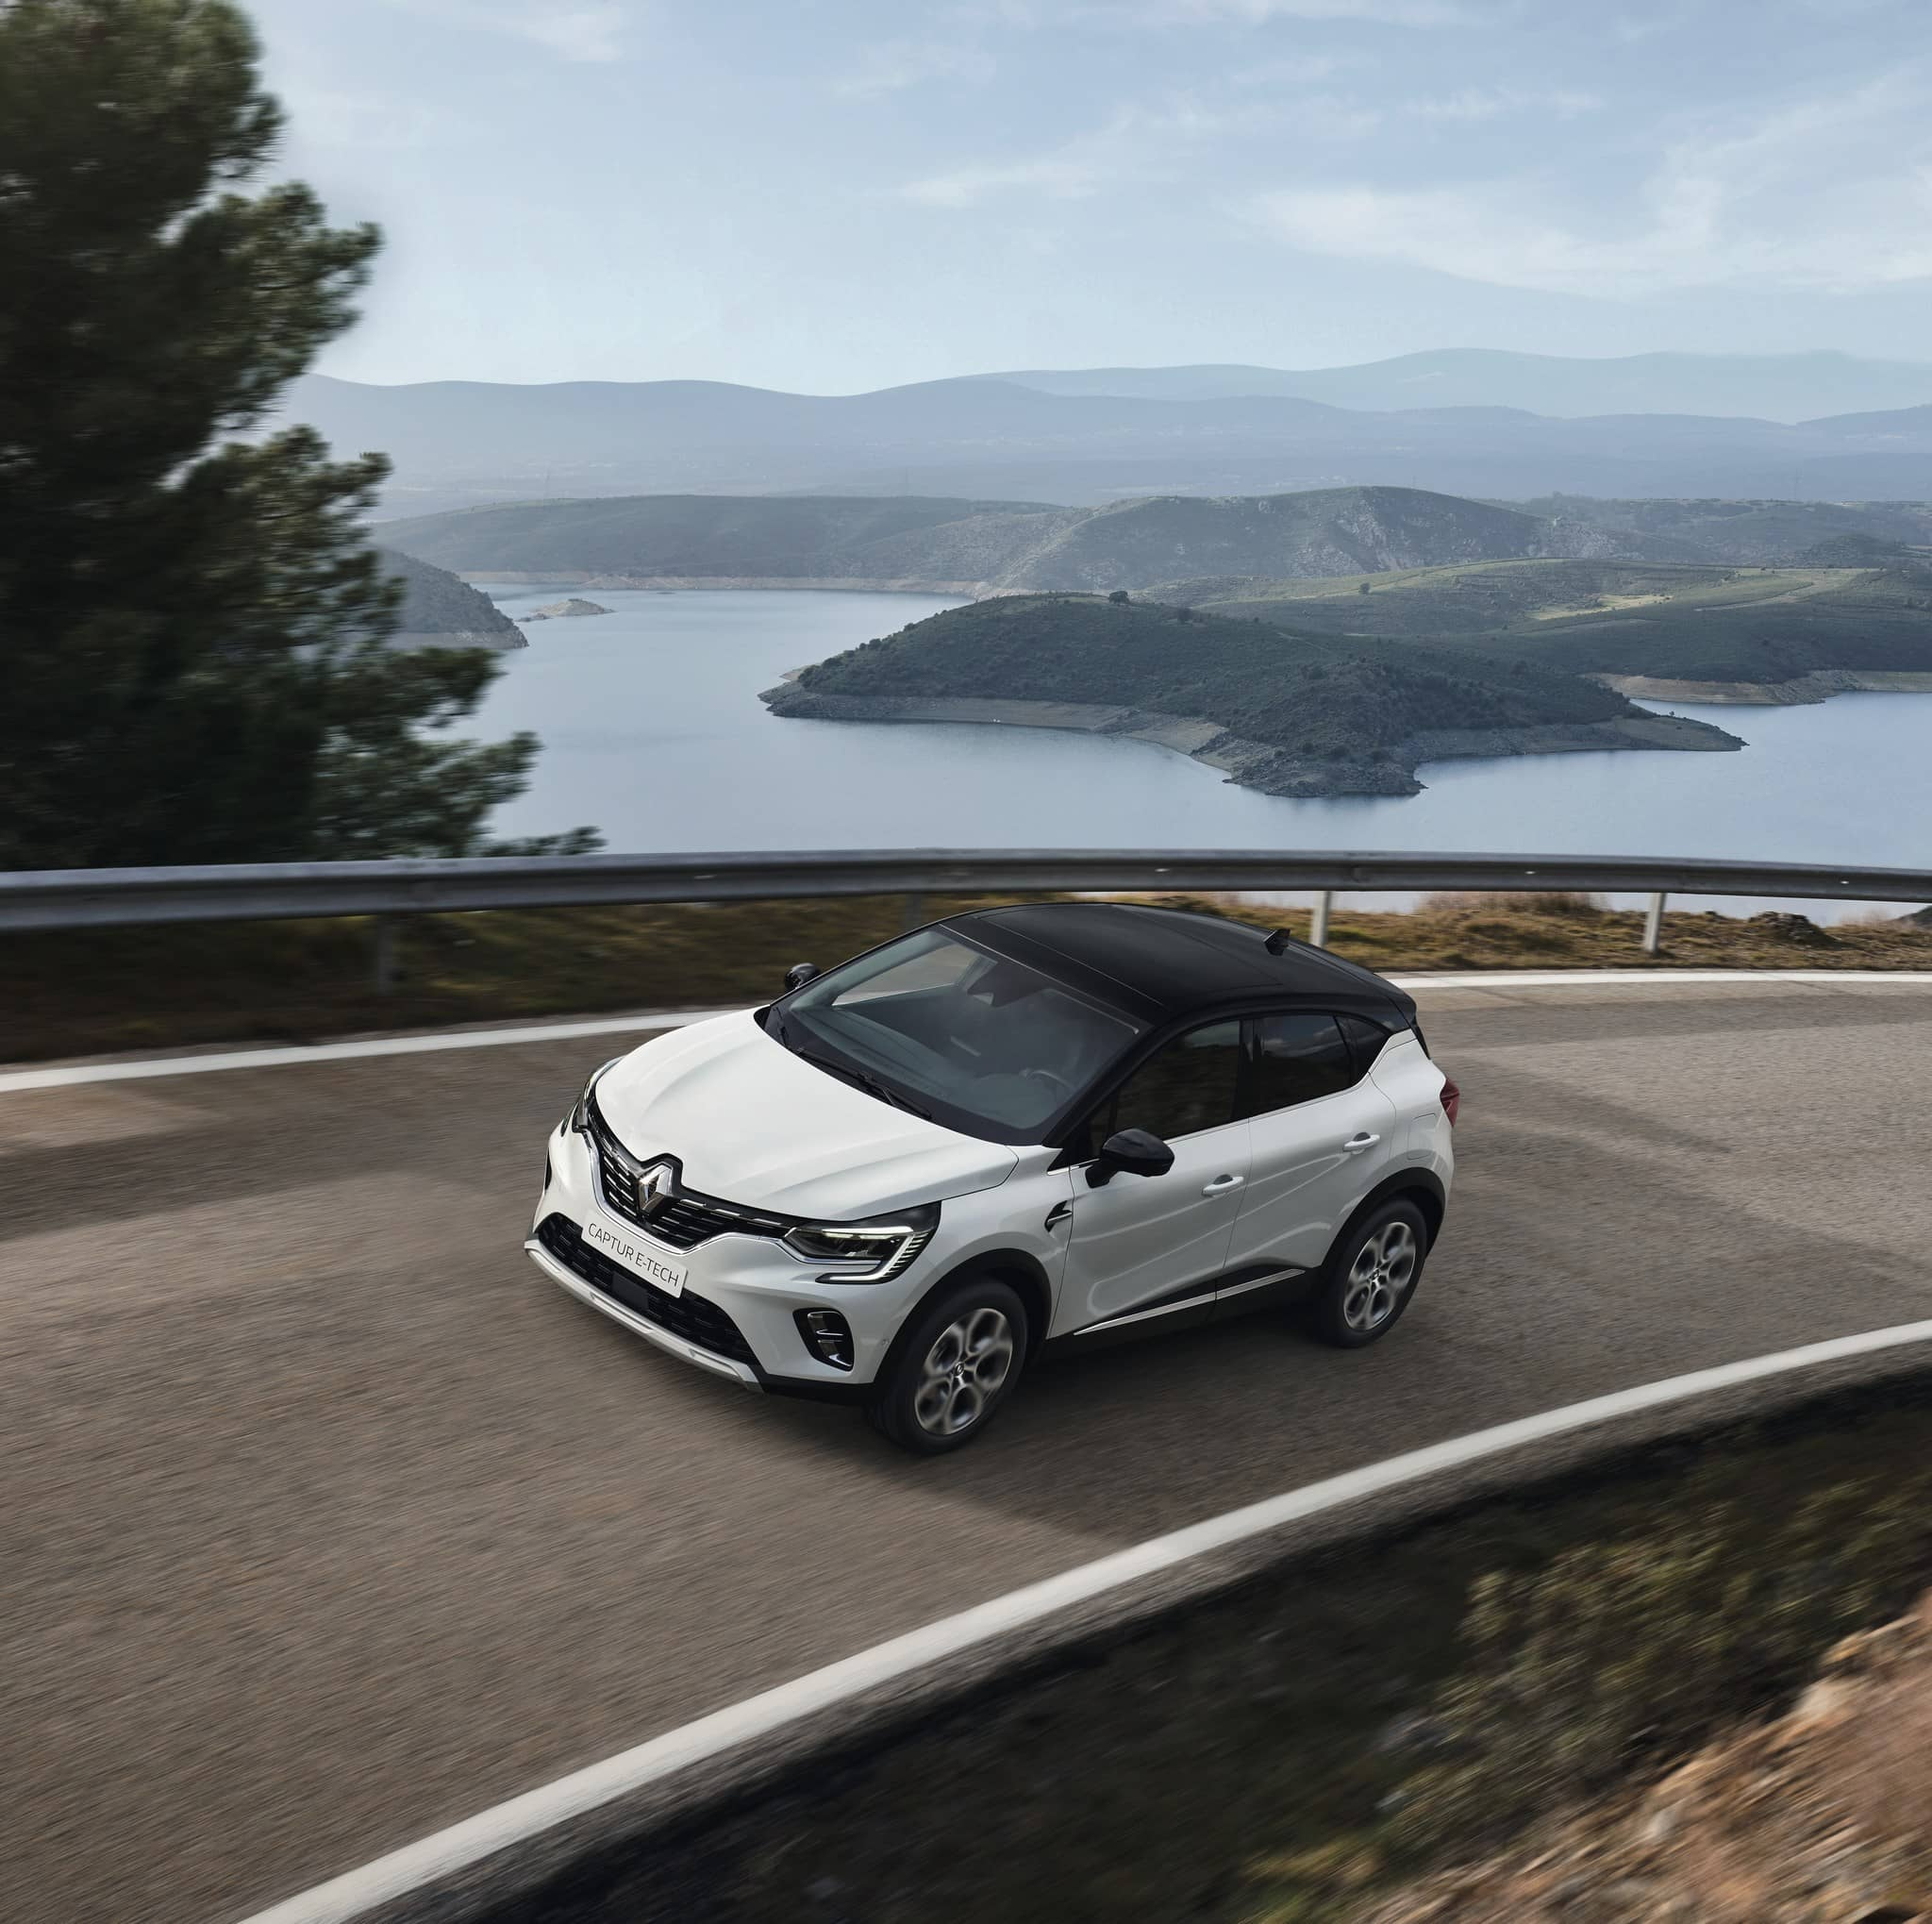 mini-2020 – New Renault CAPTUR E-TECH Plug-in (2)